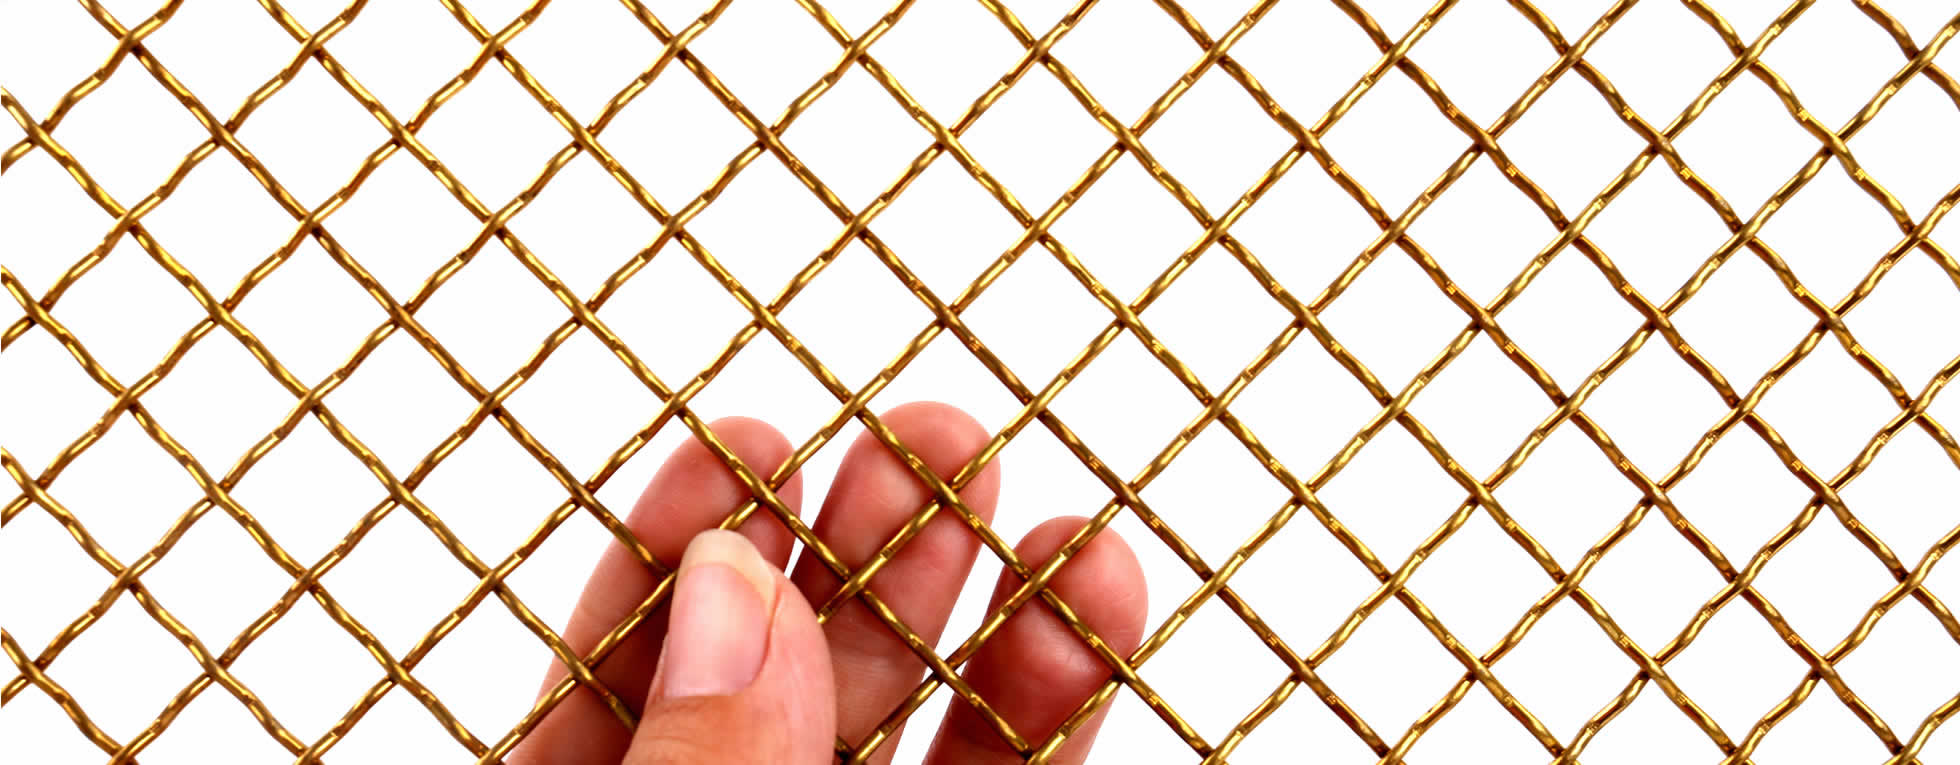 Brass mesh and copper for decorative